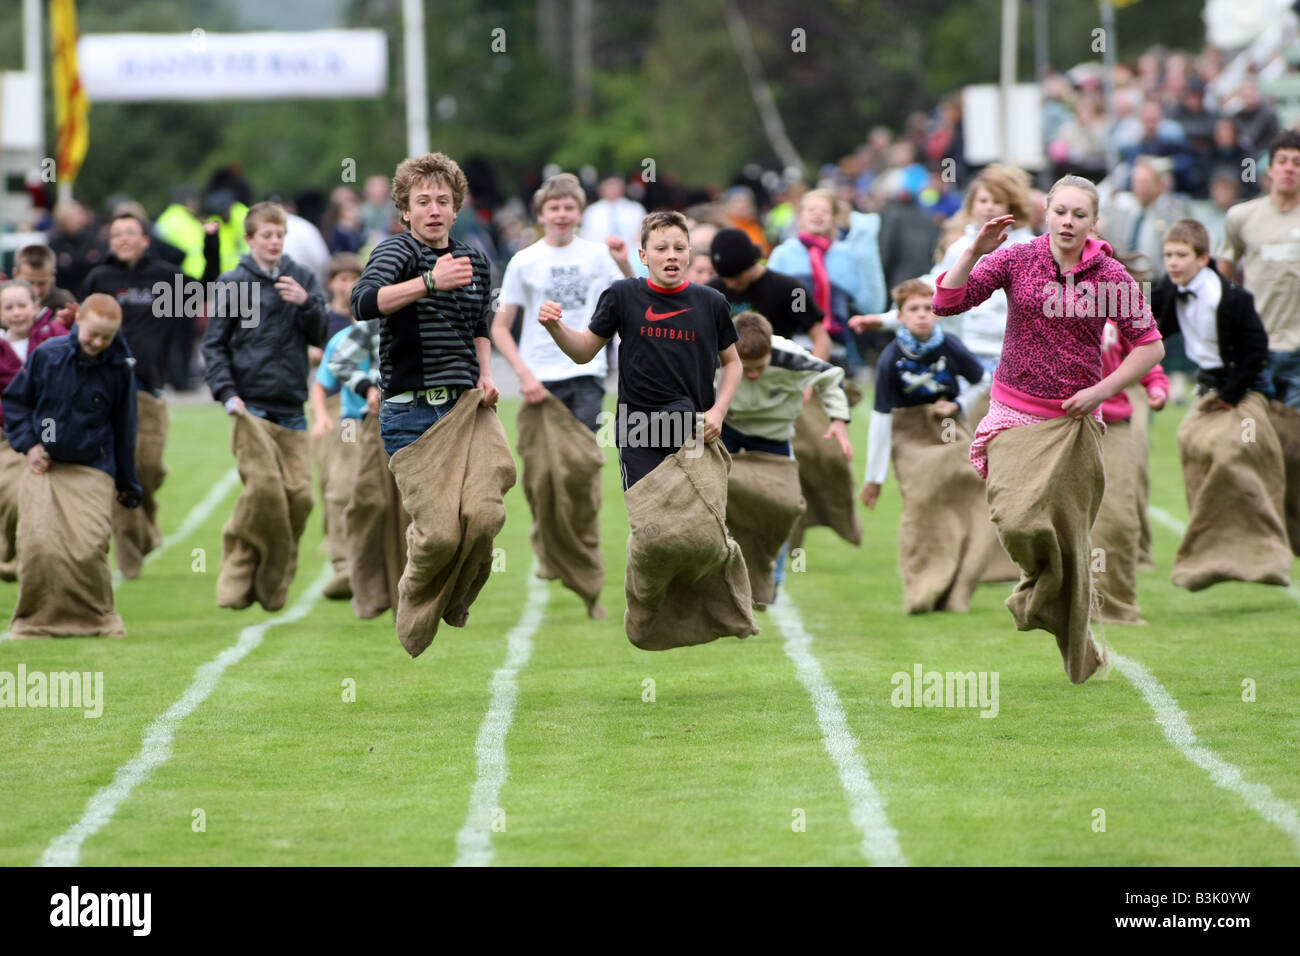 Children competing in an old fashioned traditional sack race in the UK - Stock Image